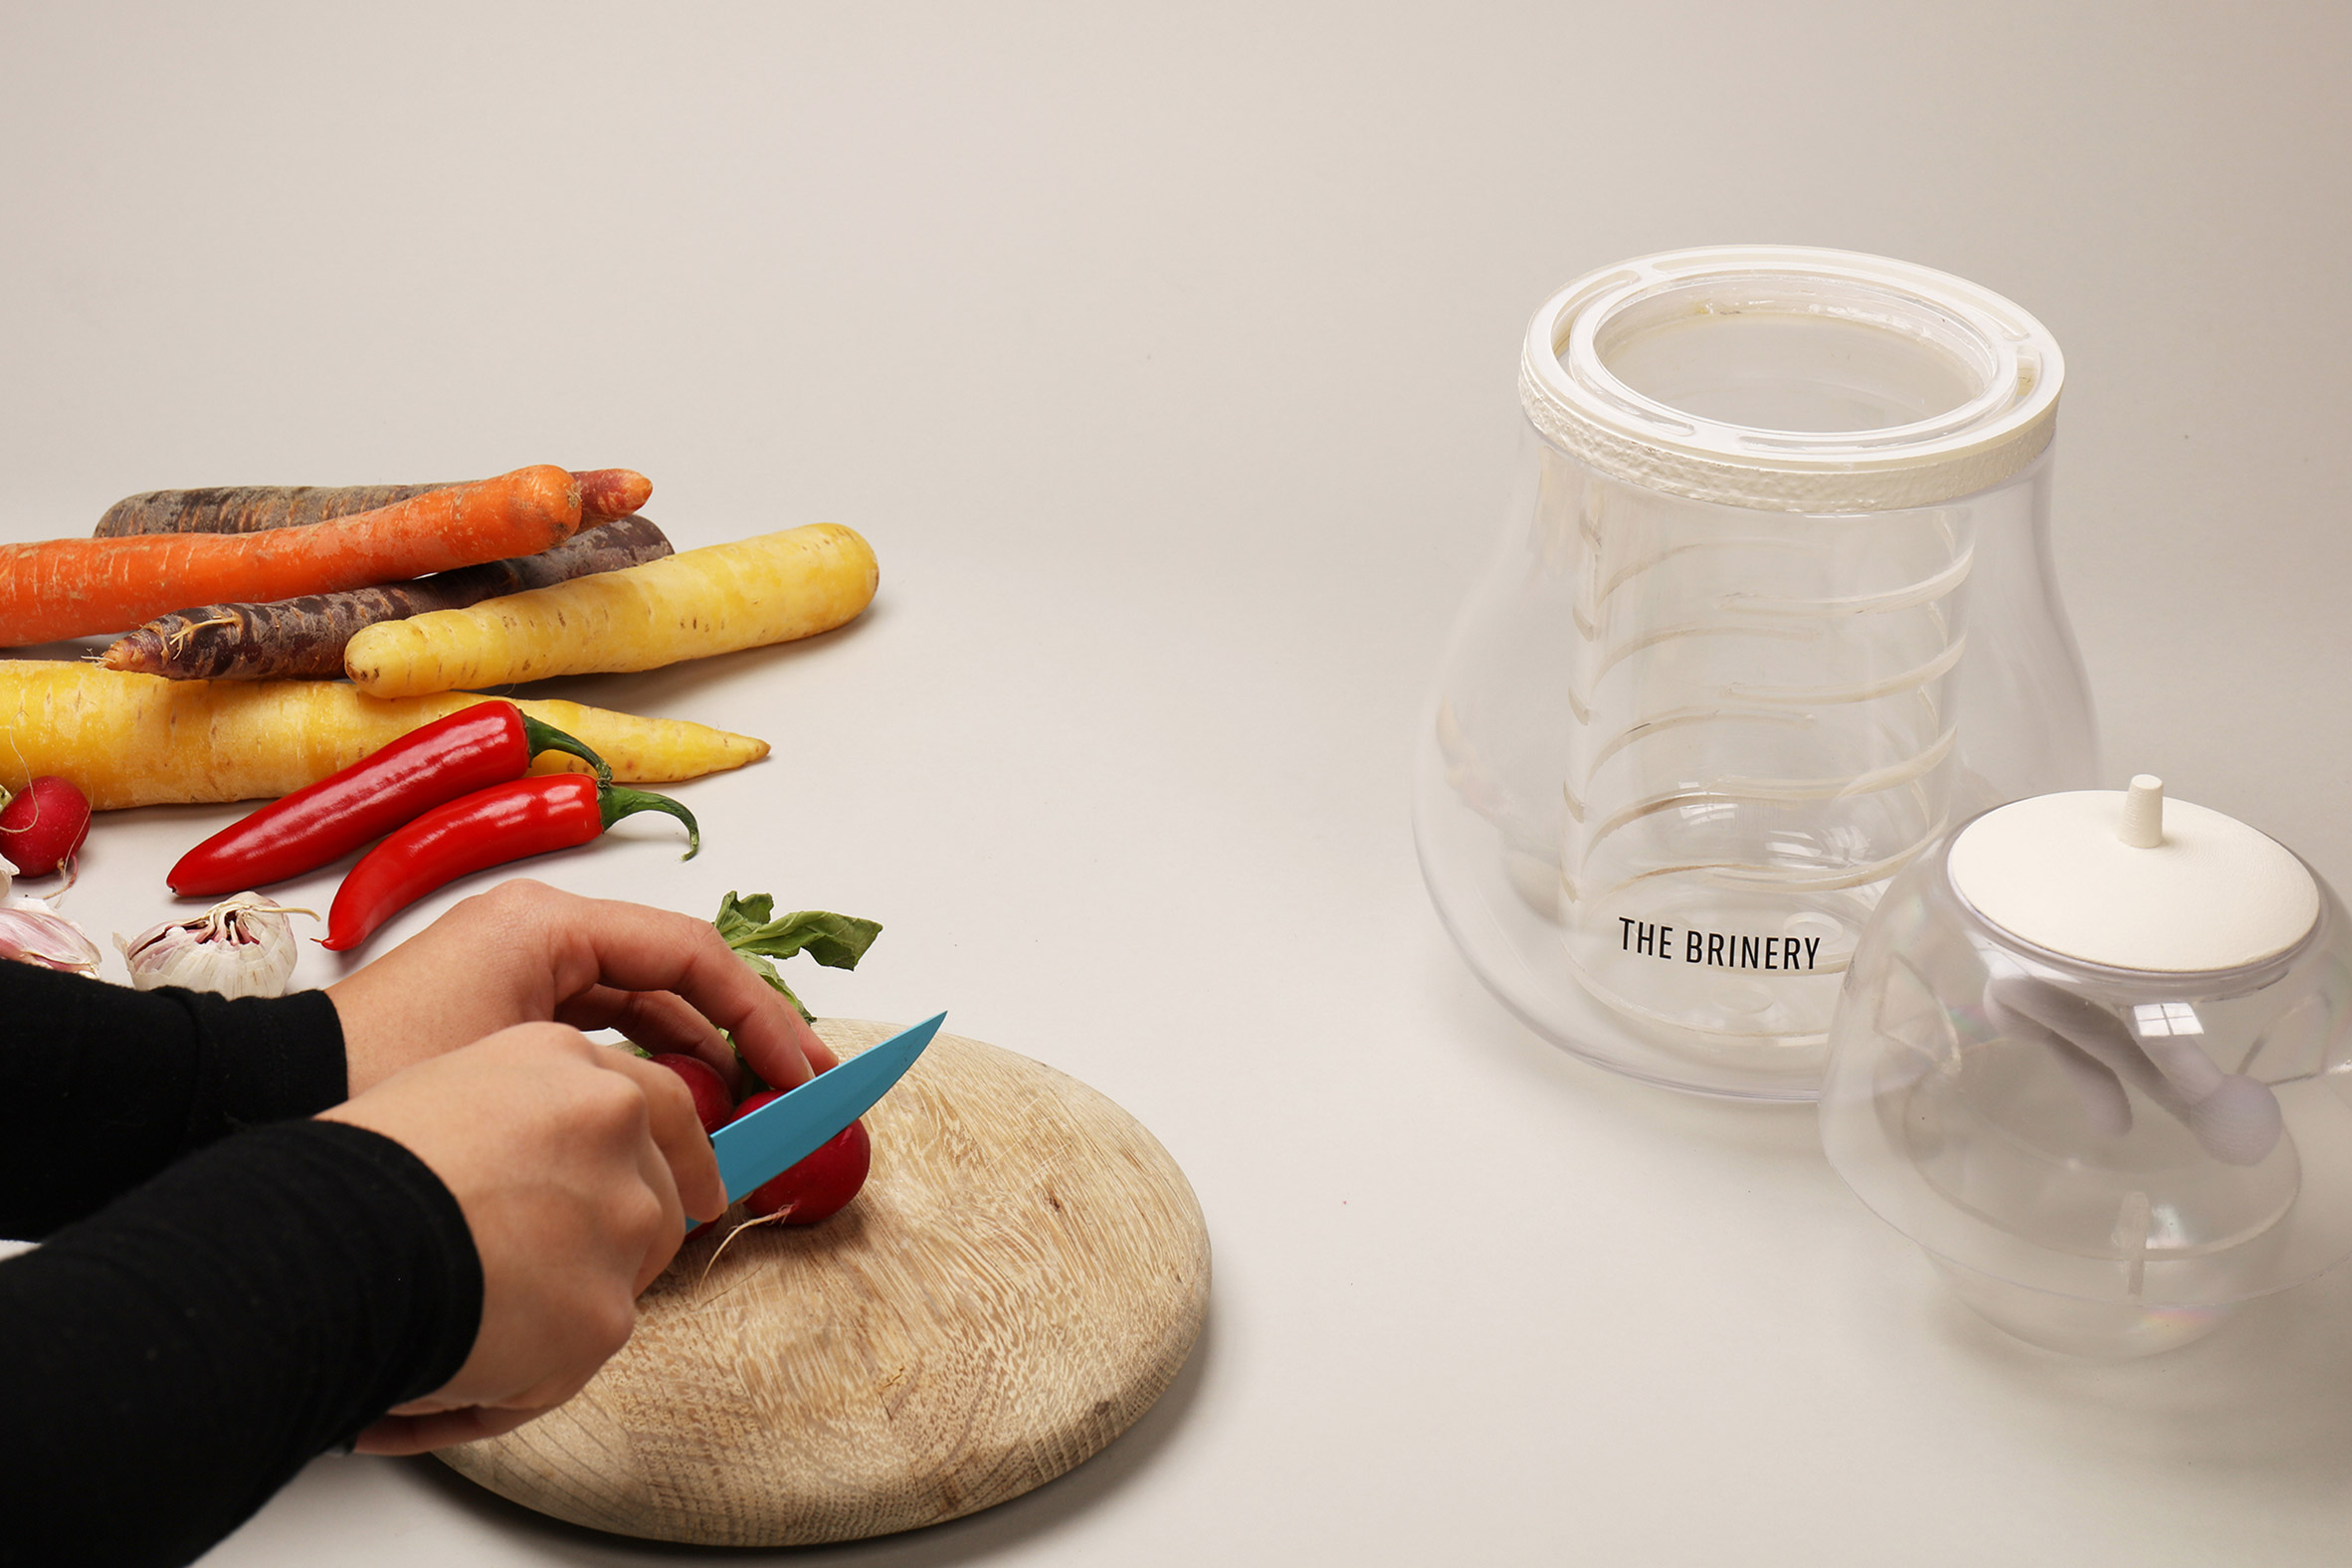 Royal College of Art students design The Brinery home fermentation tool